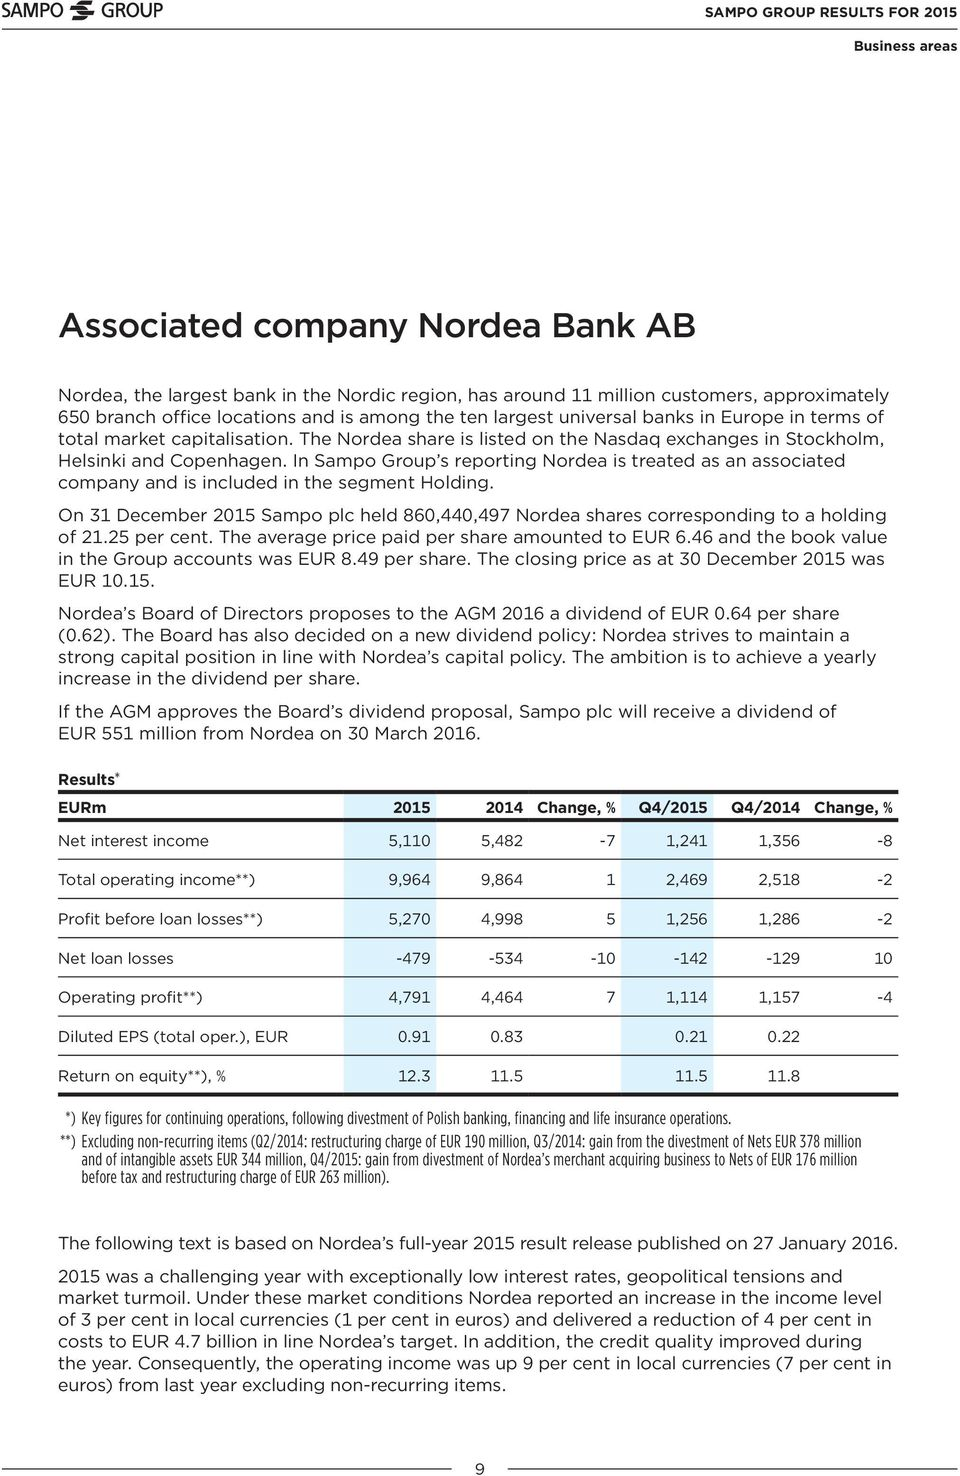 In Sampo Group s reporting Nordea is treated as an associated company and is included in the segment Holding.